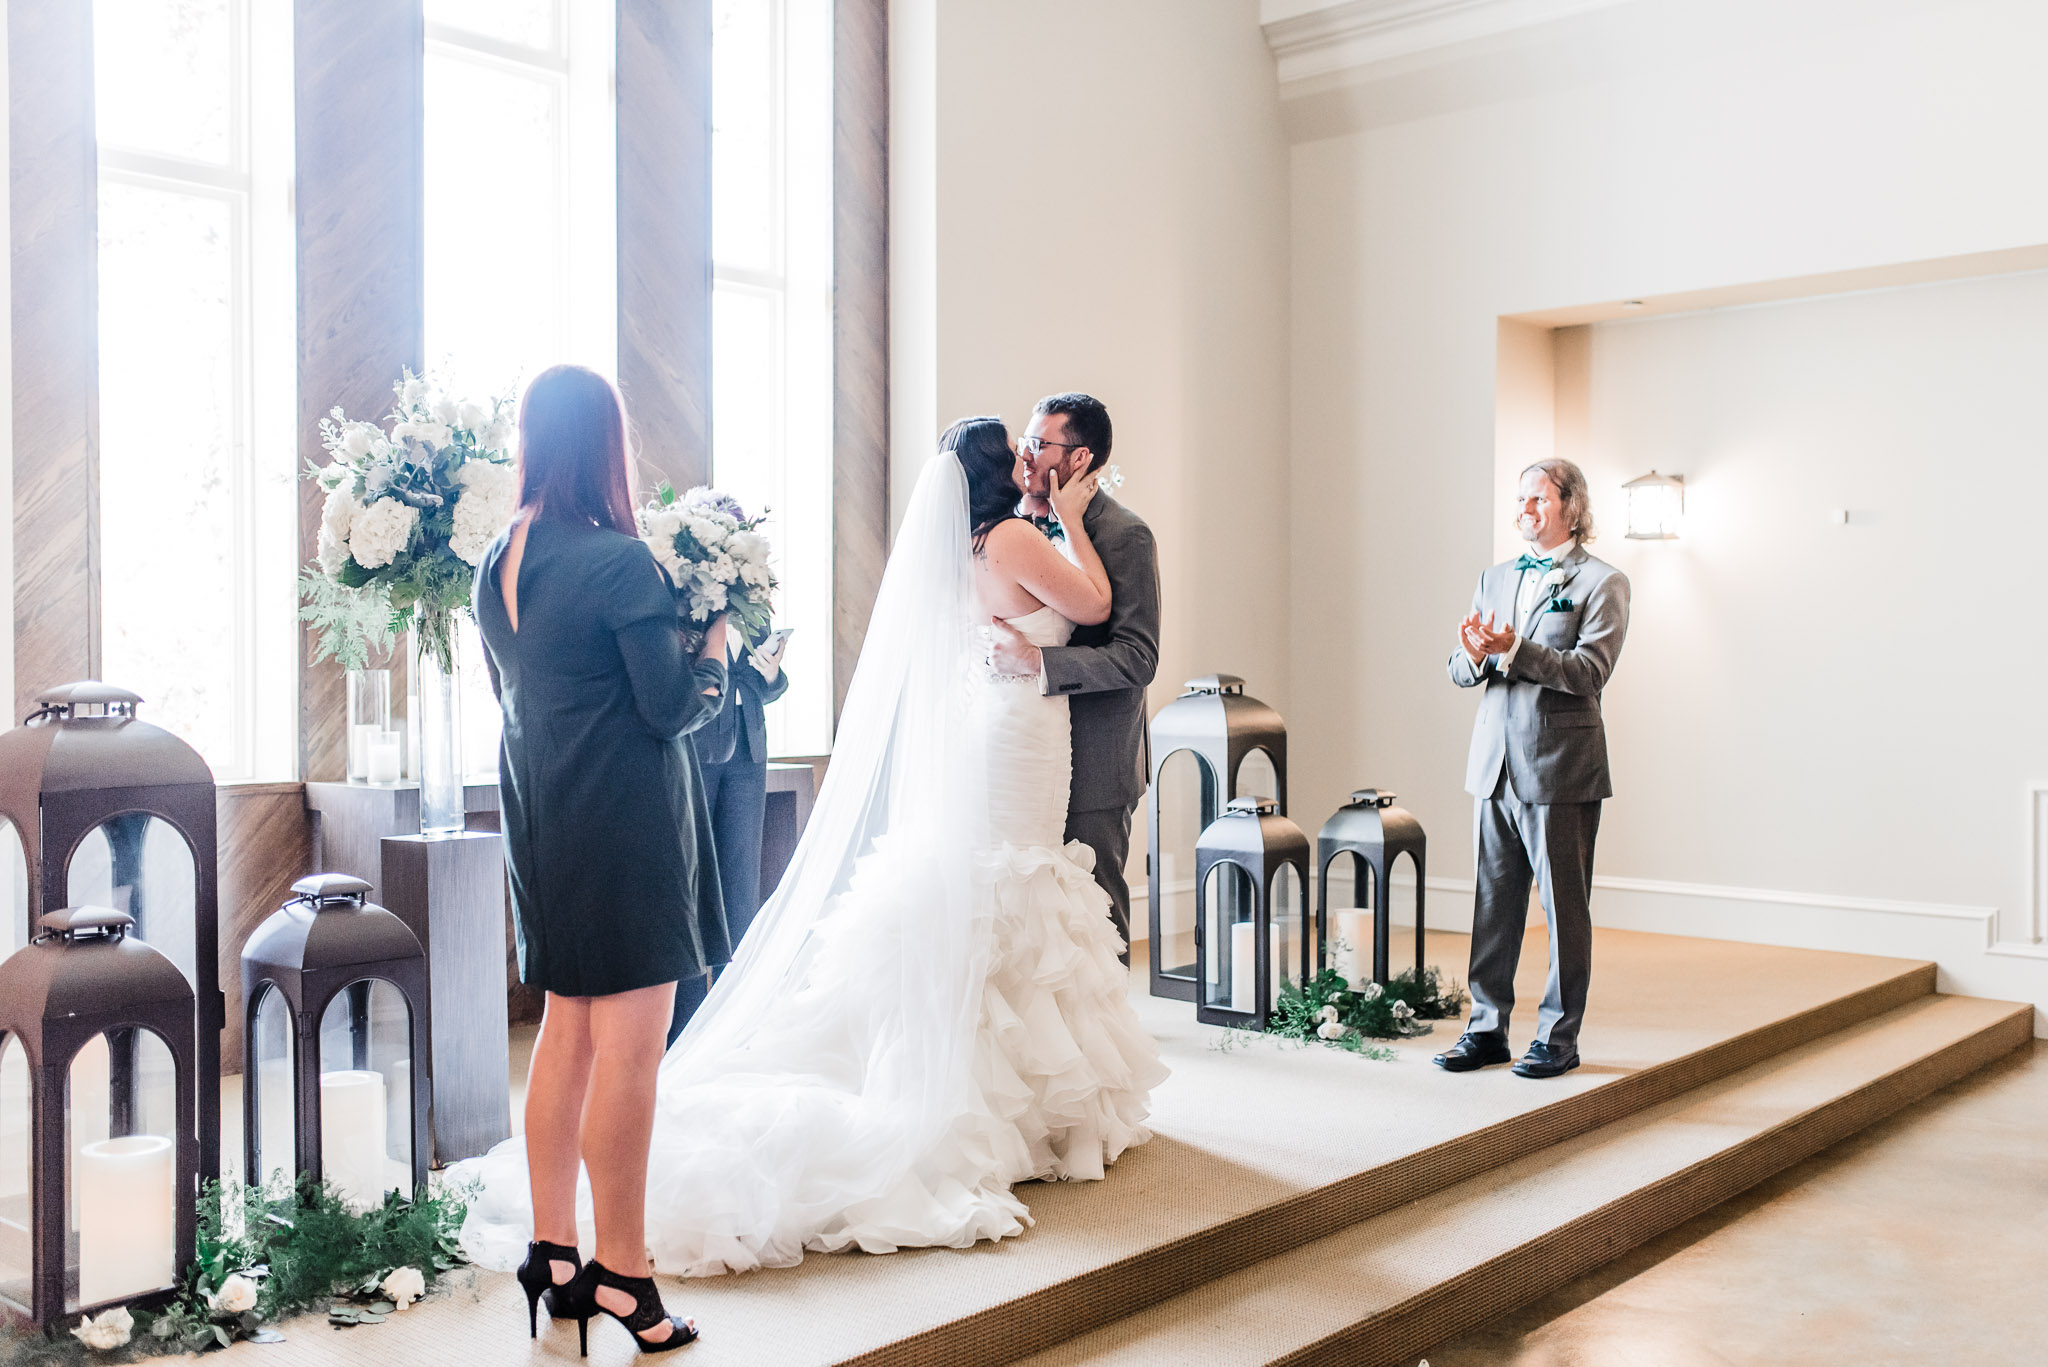 Bride and groom come in for their first kiss